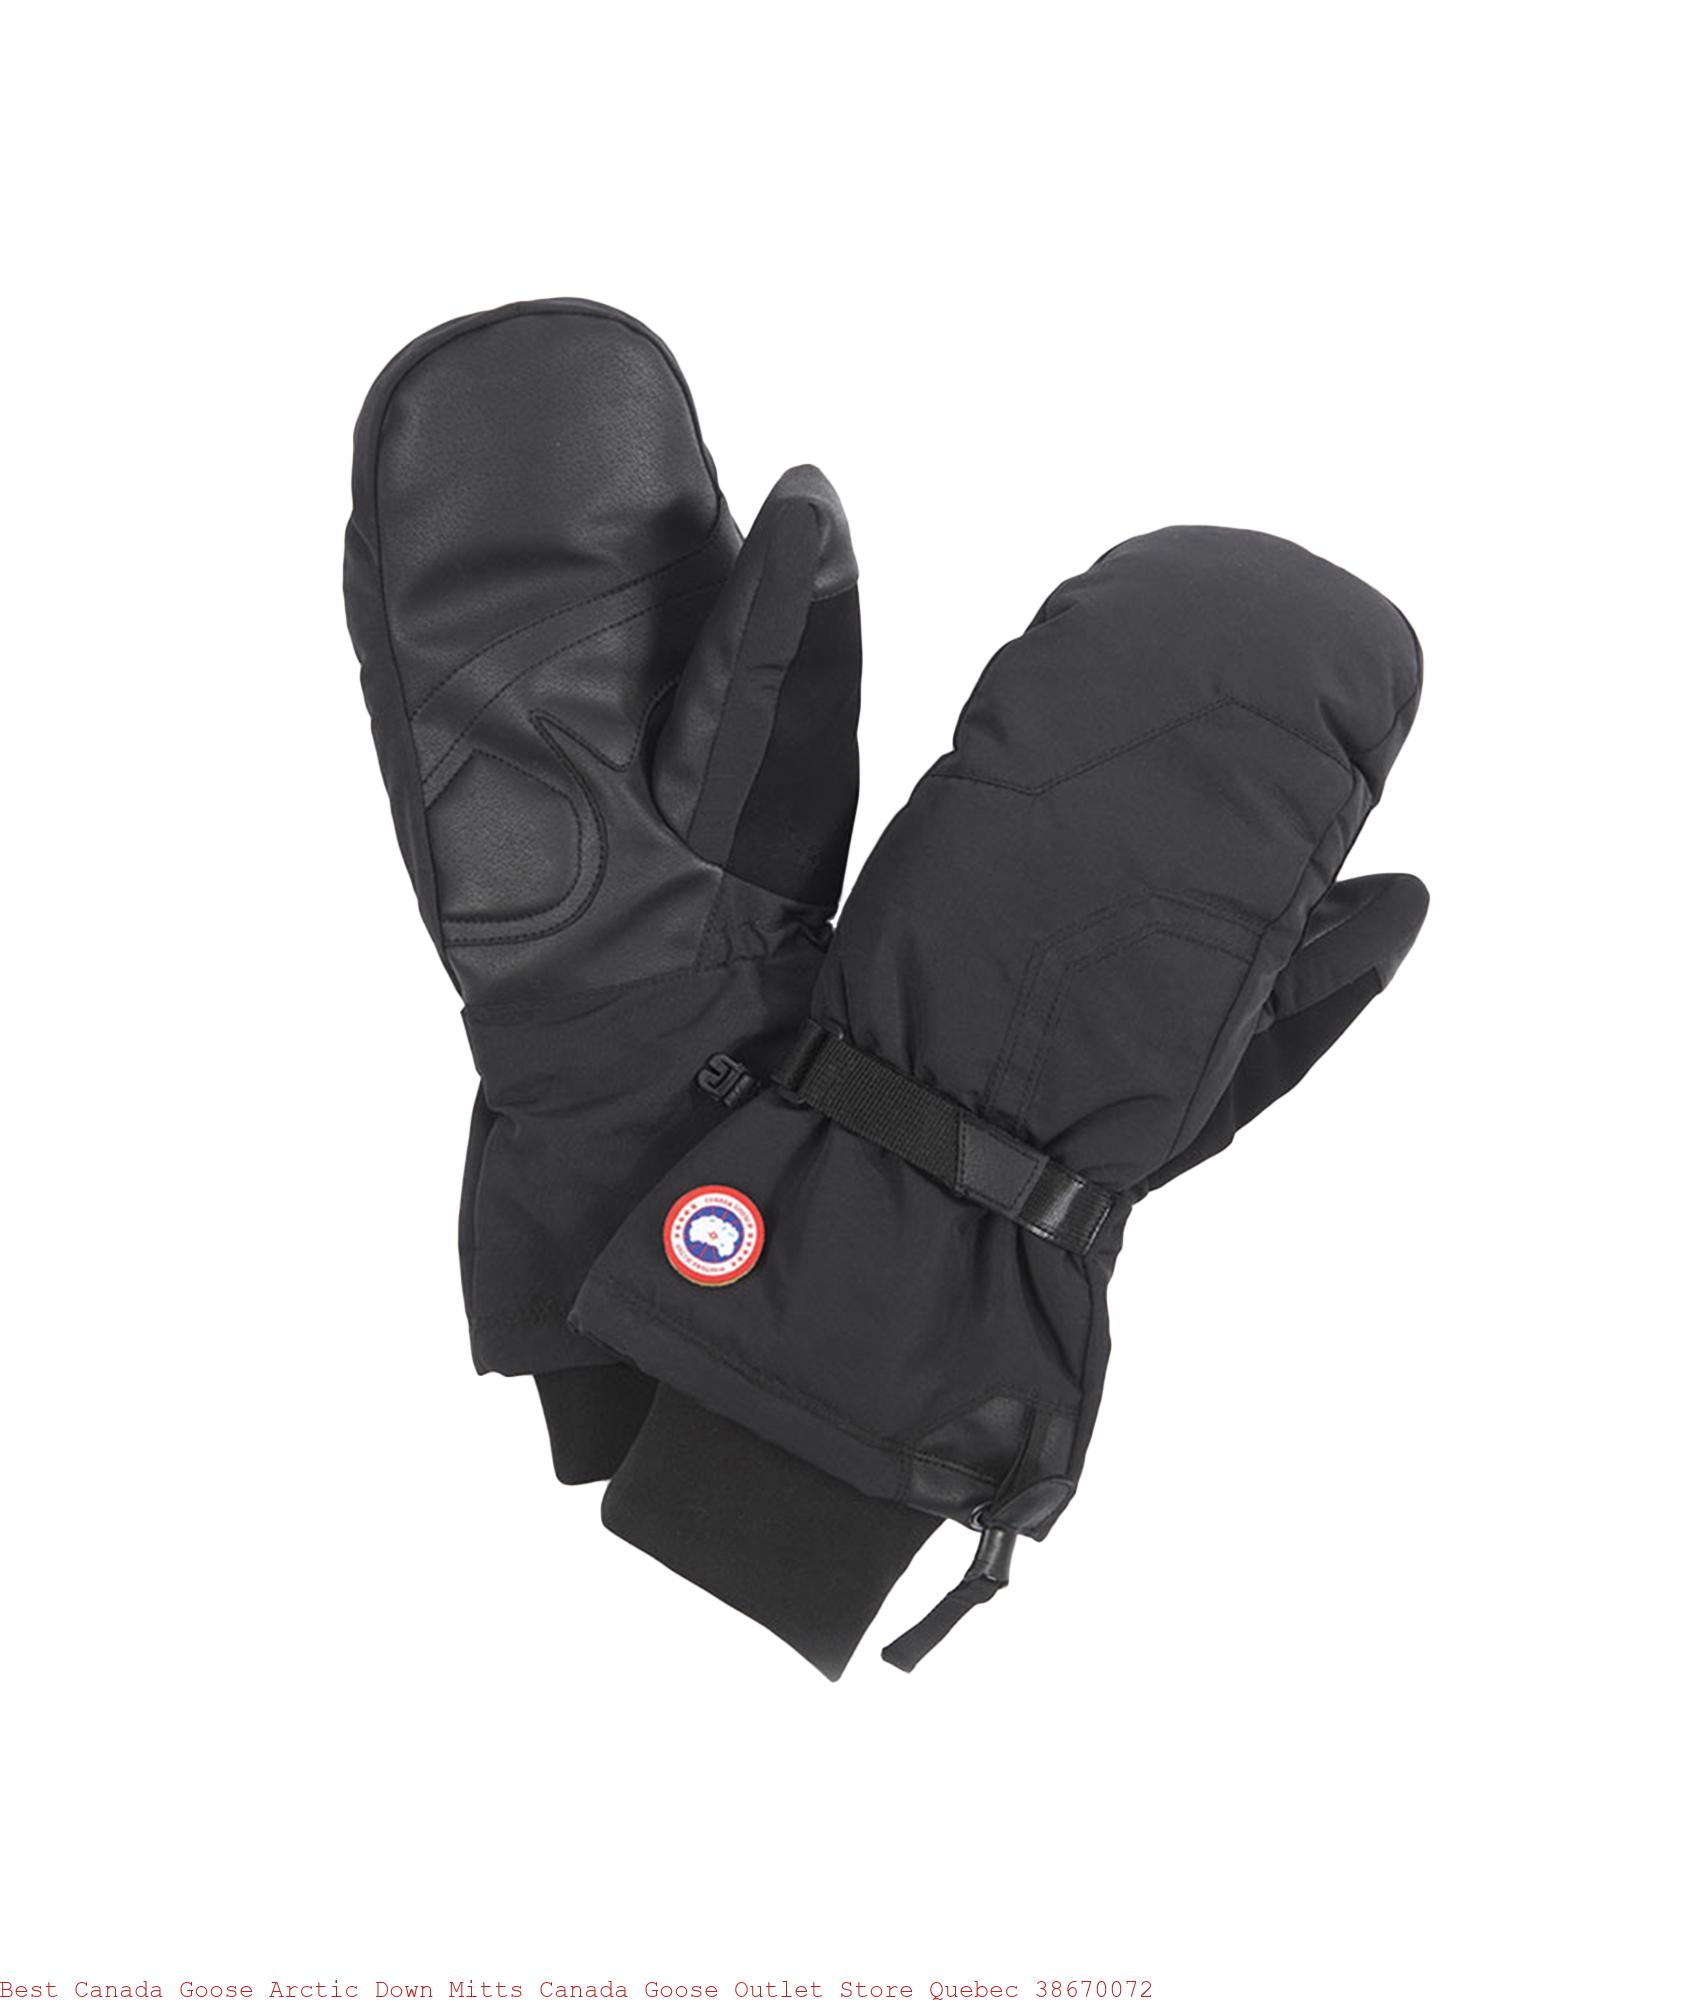 Best Canada Goose Arctic Down Mitts Canada Goose Outlet Store Quebec 38670072